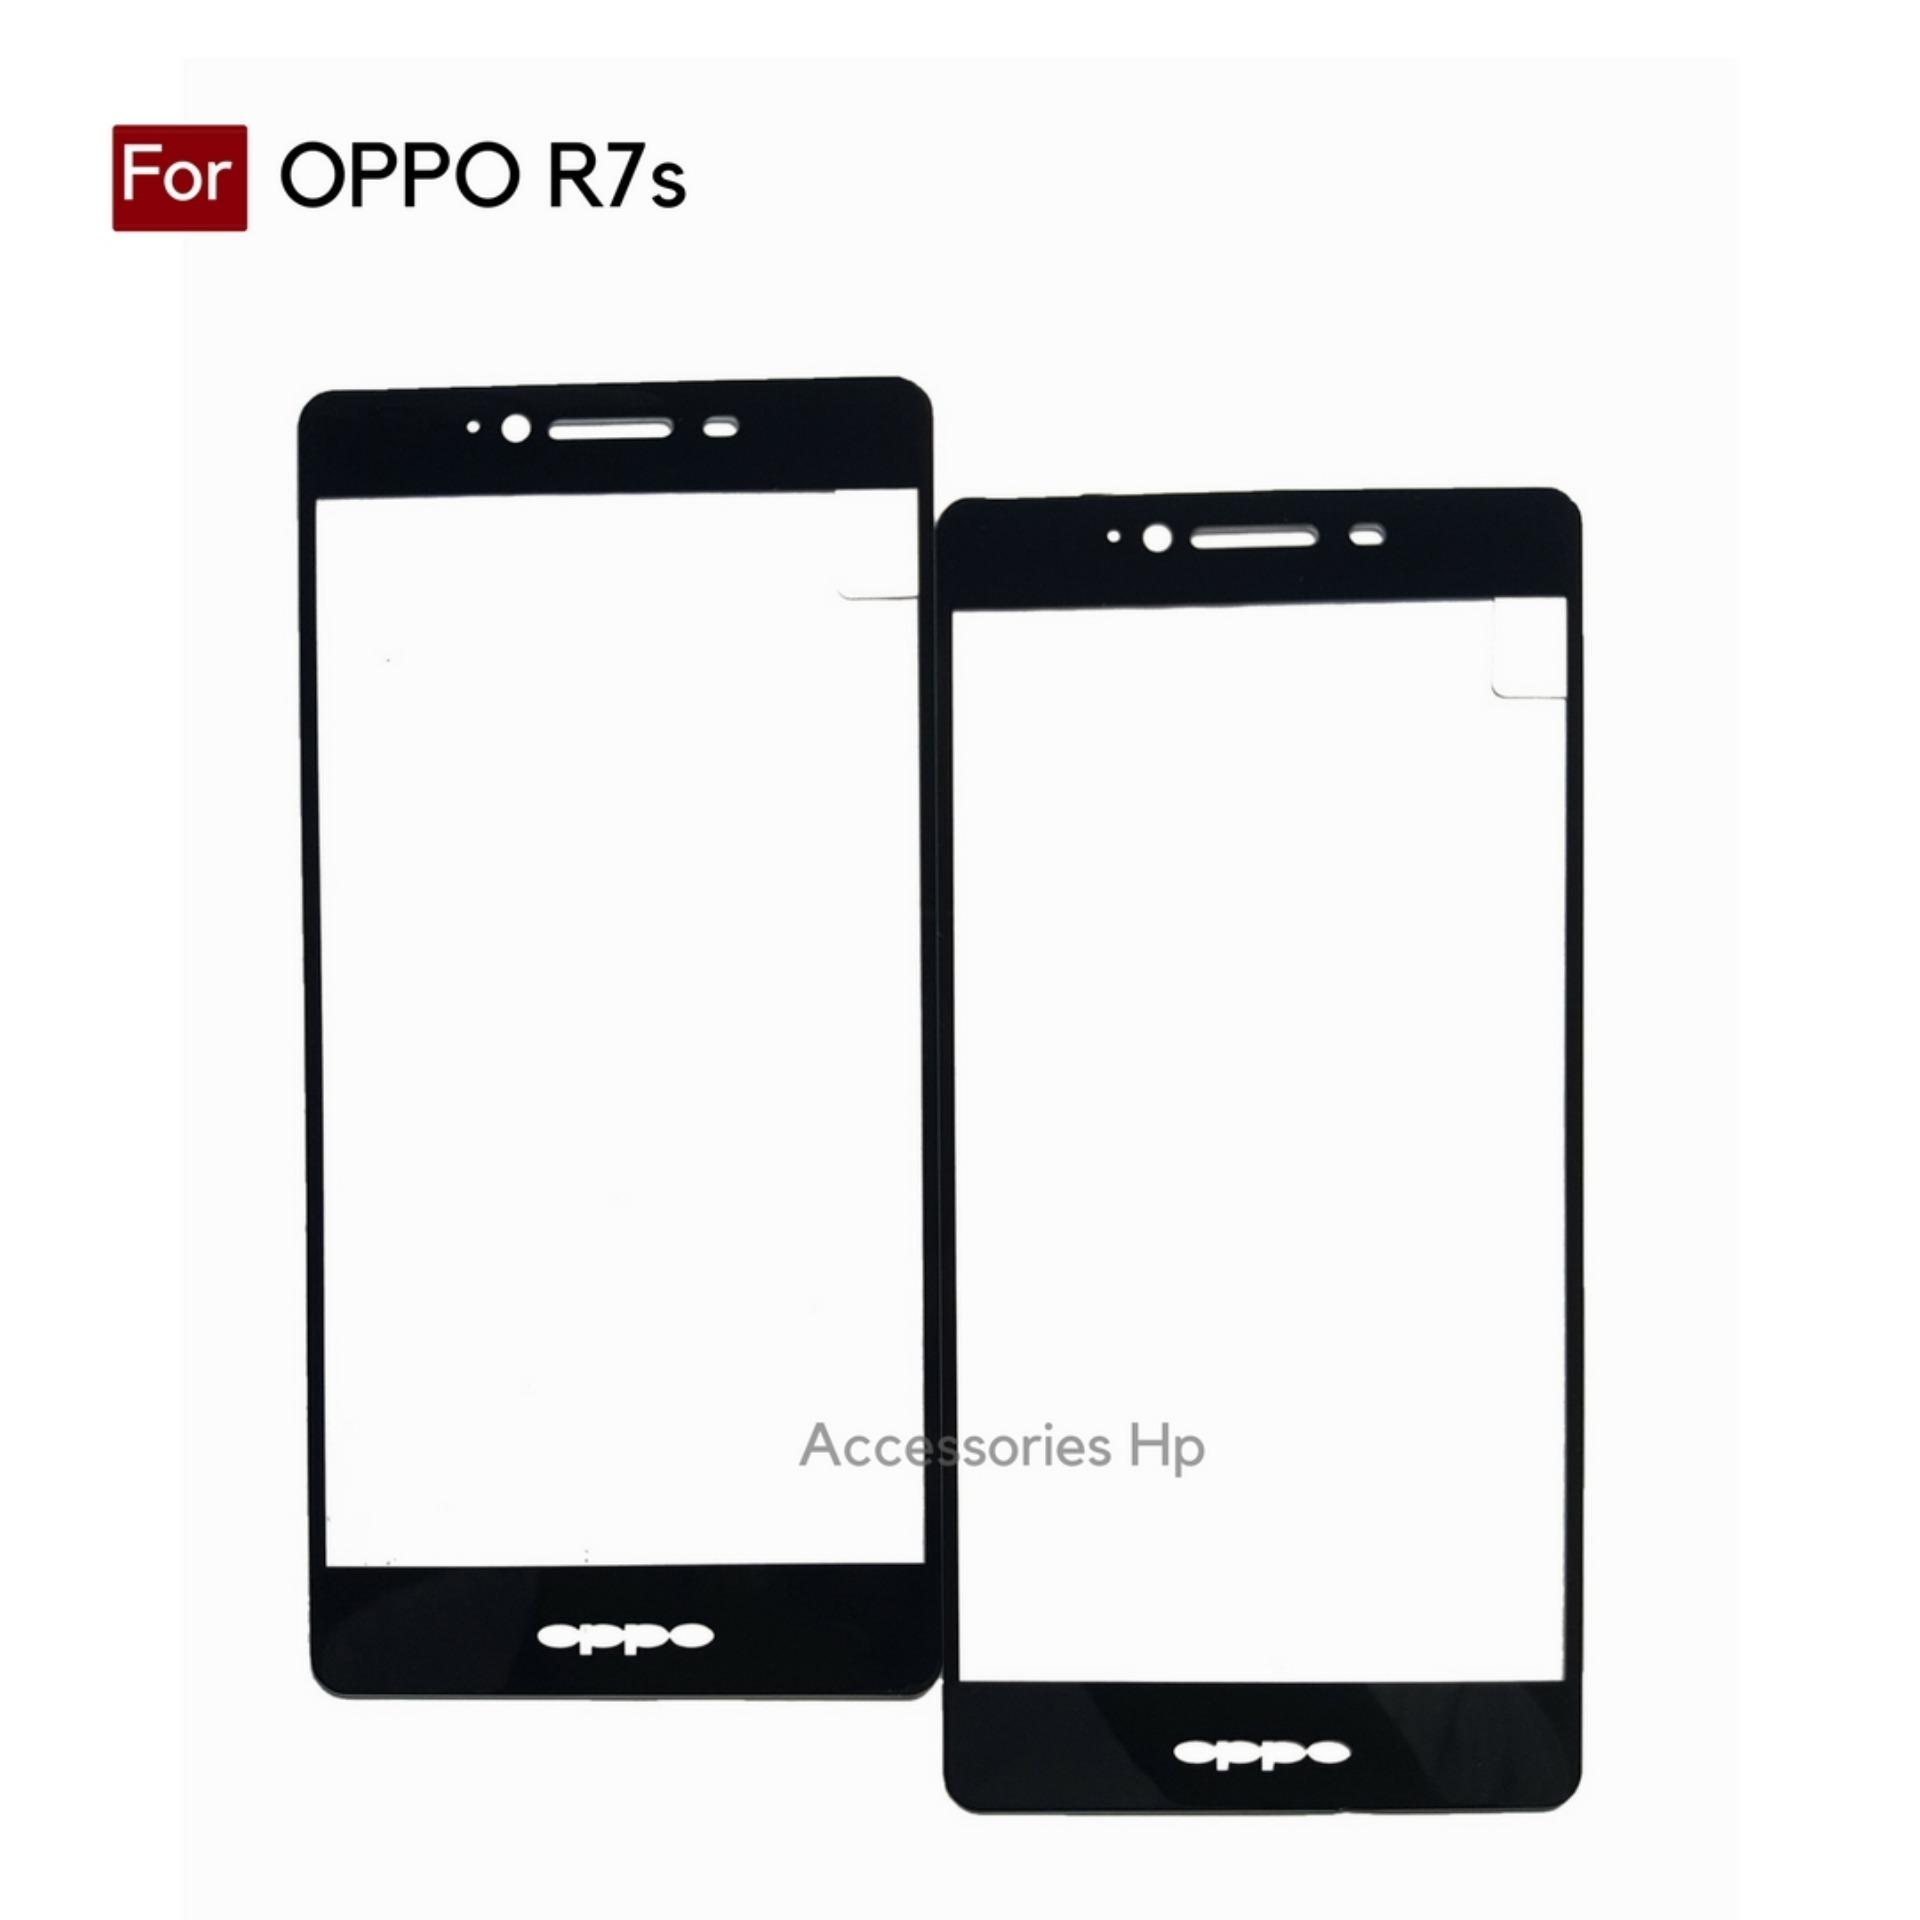 Accessories Hp Full Cover Tempered Glass Warna Screen Protector for Oppo R7s Hitam